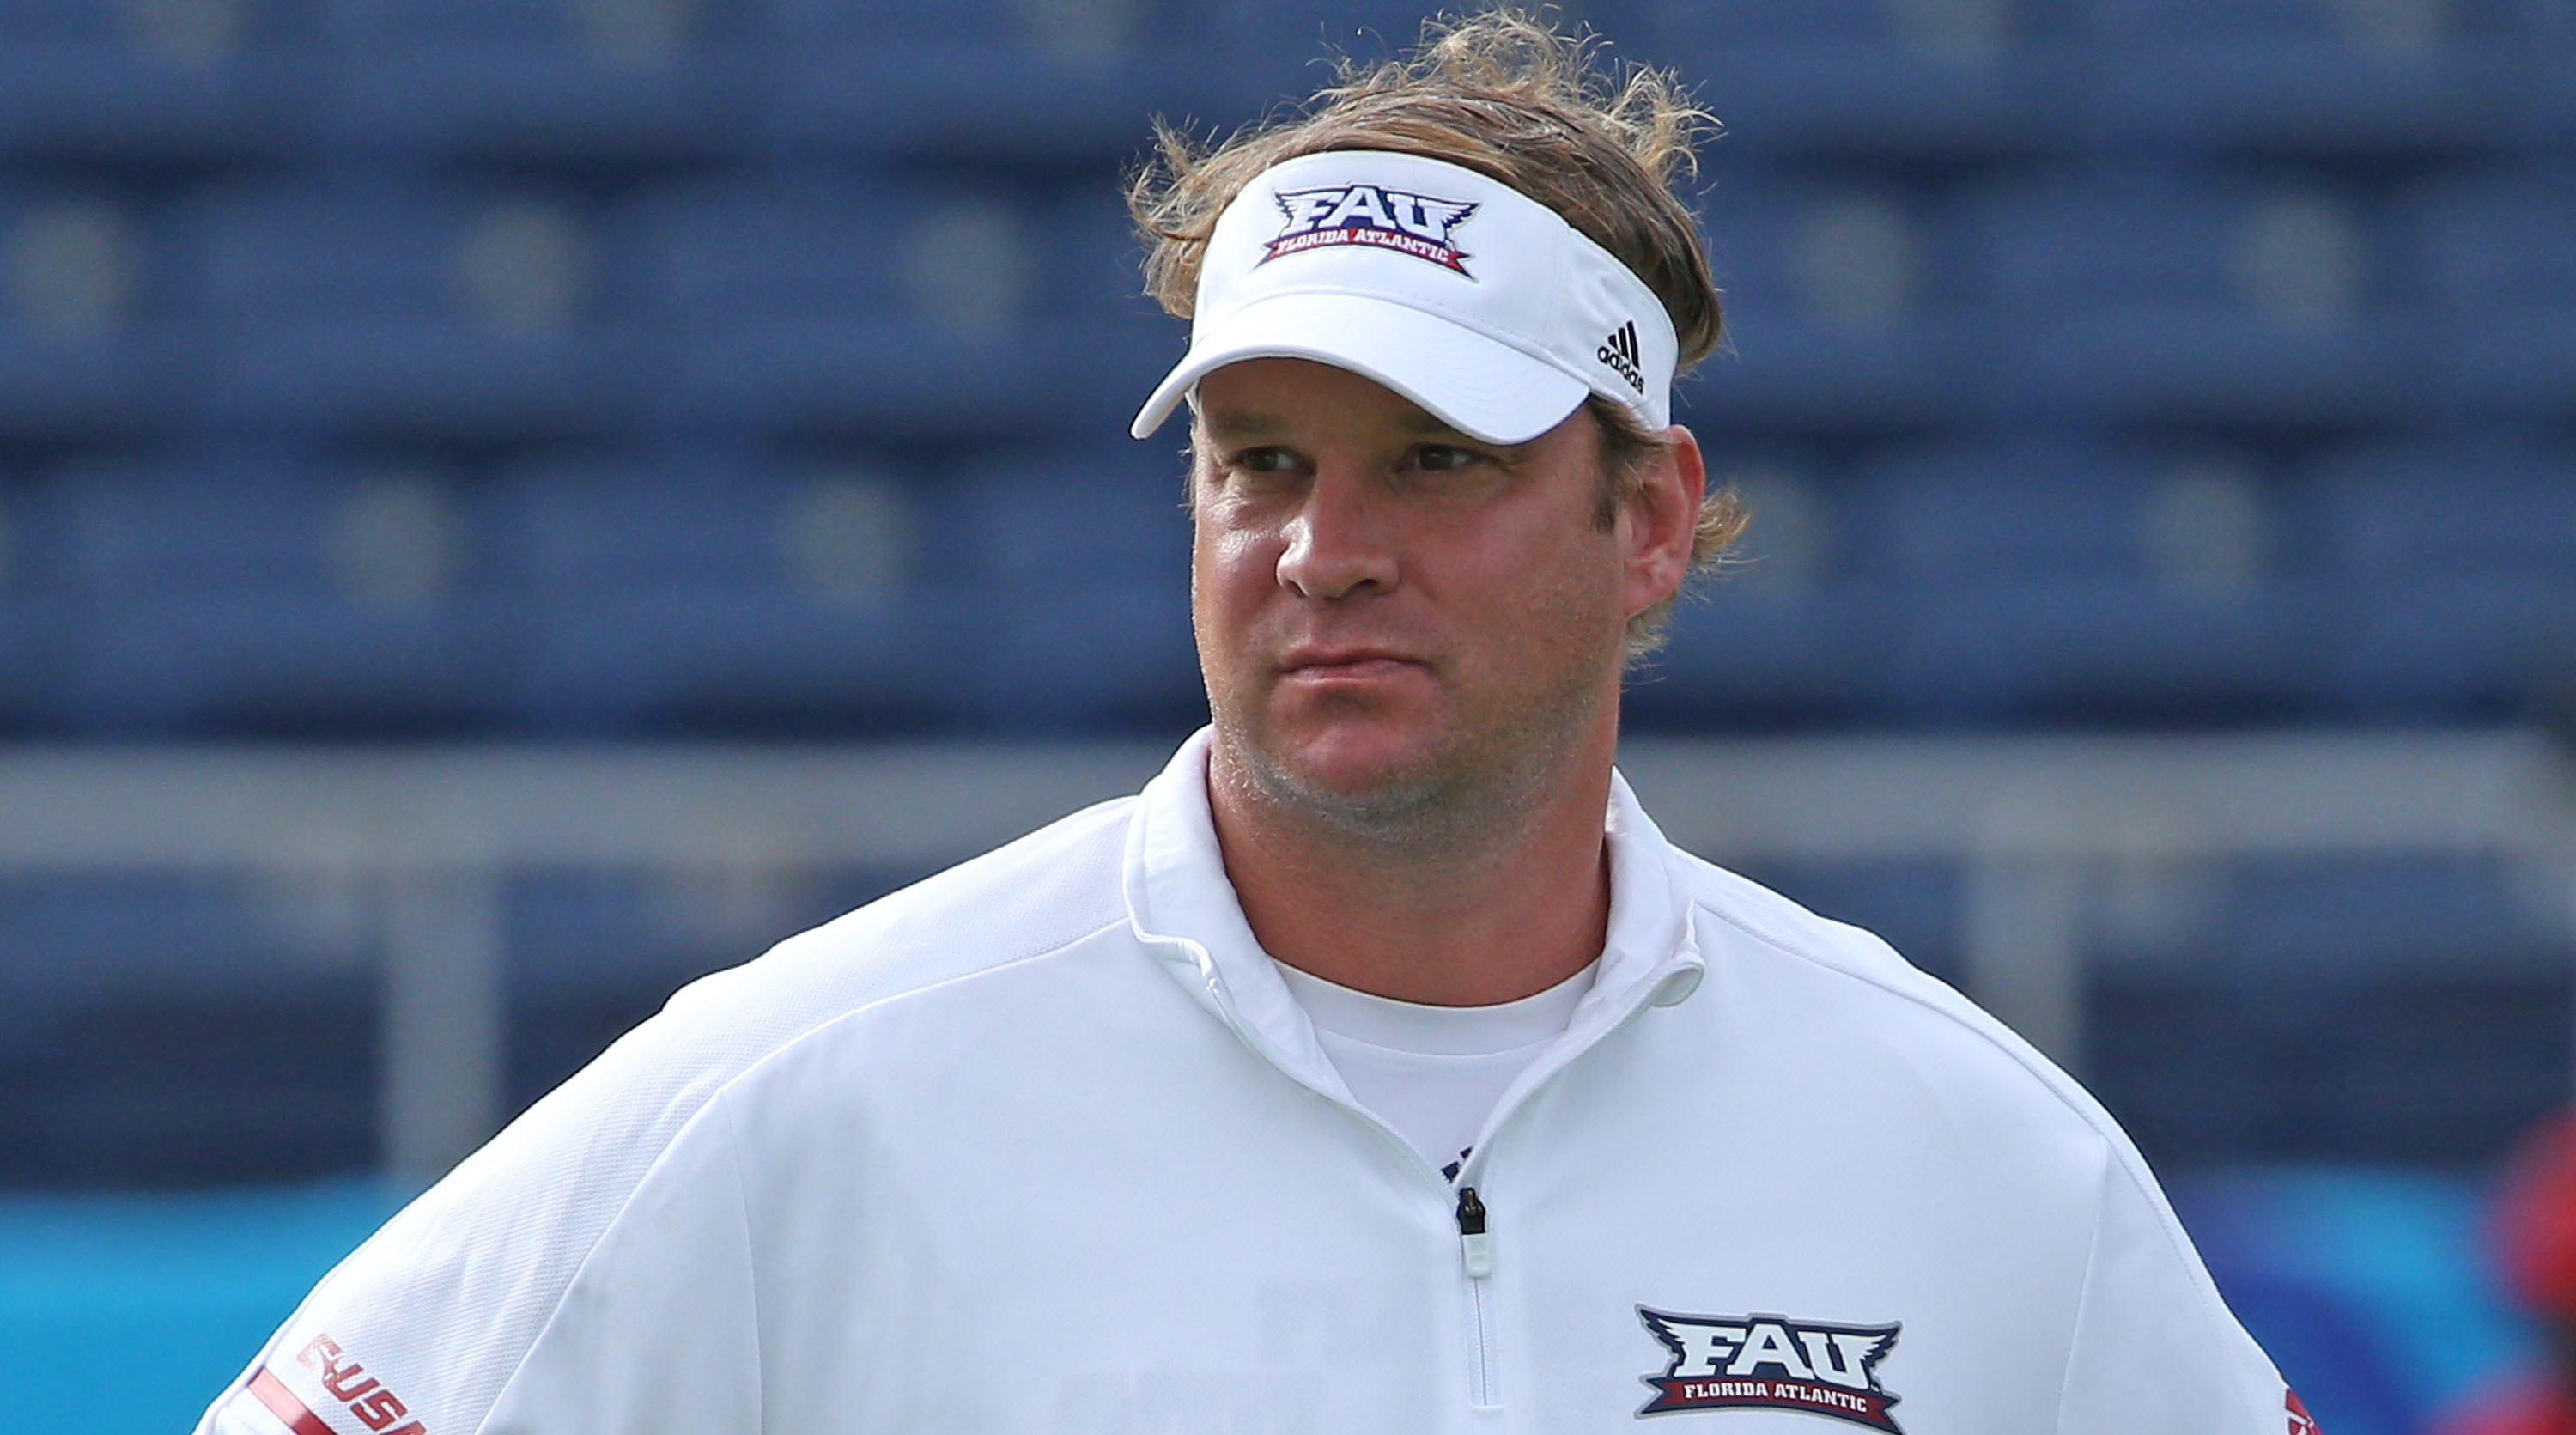 FAU head coach Lane Kiffin